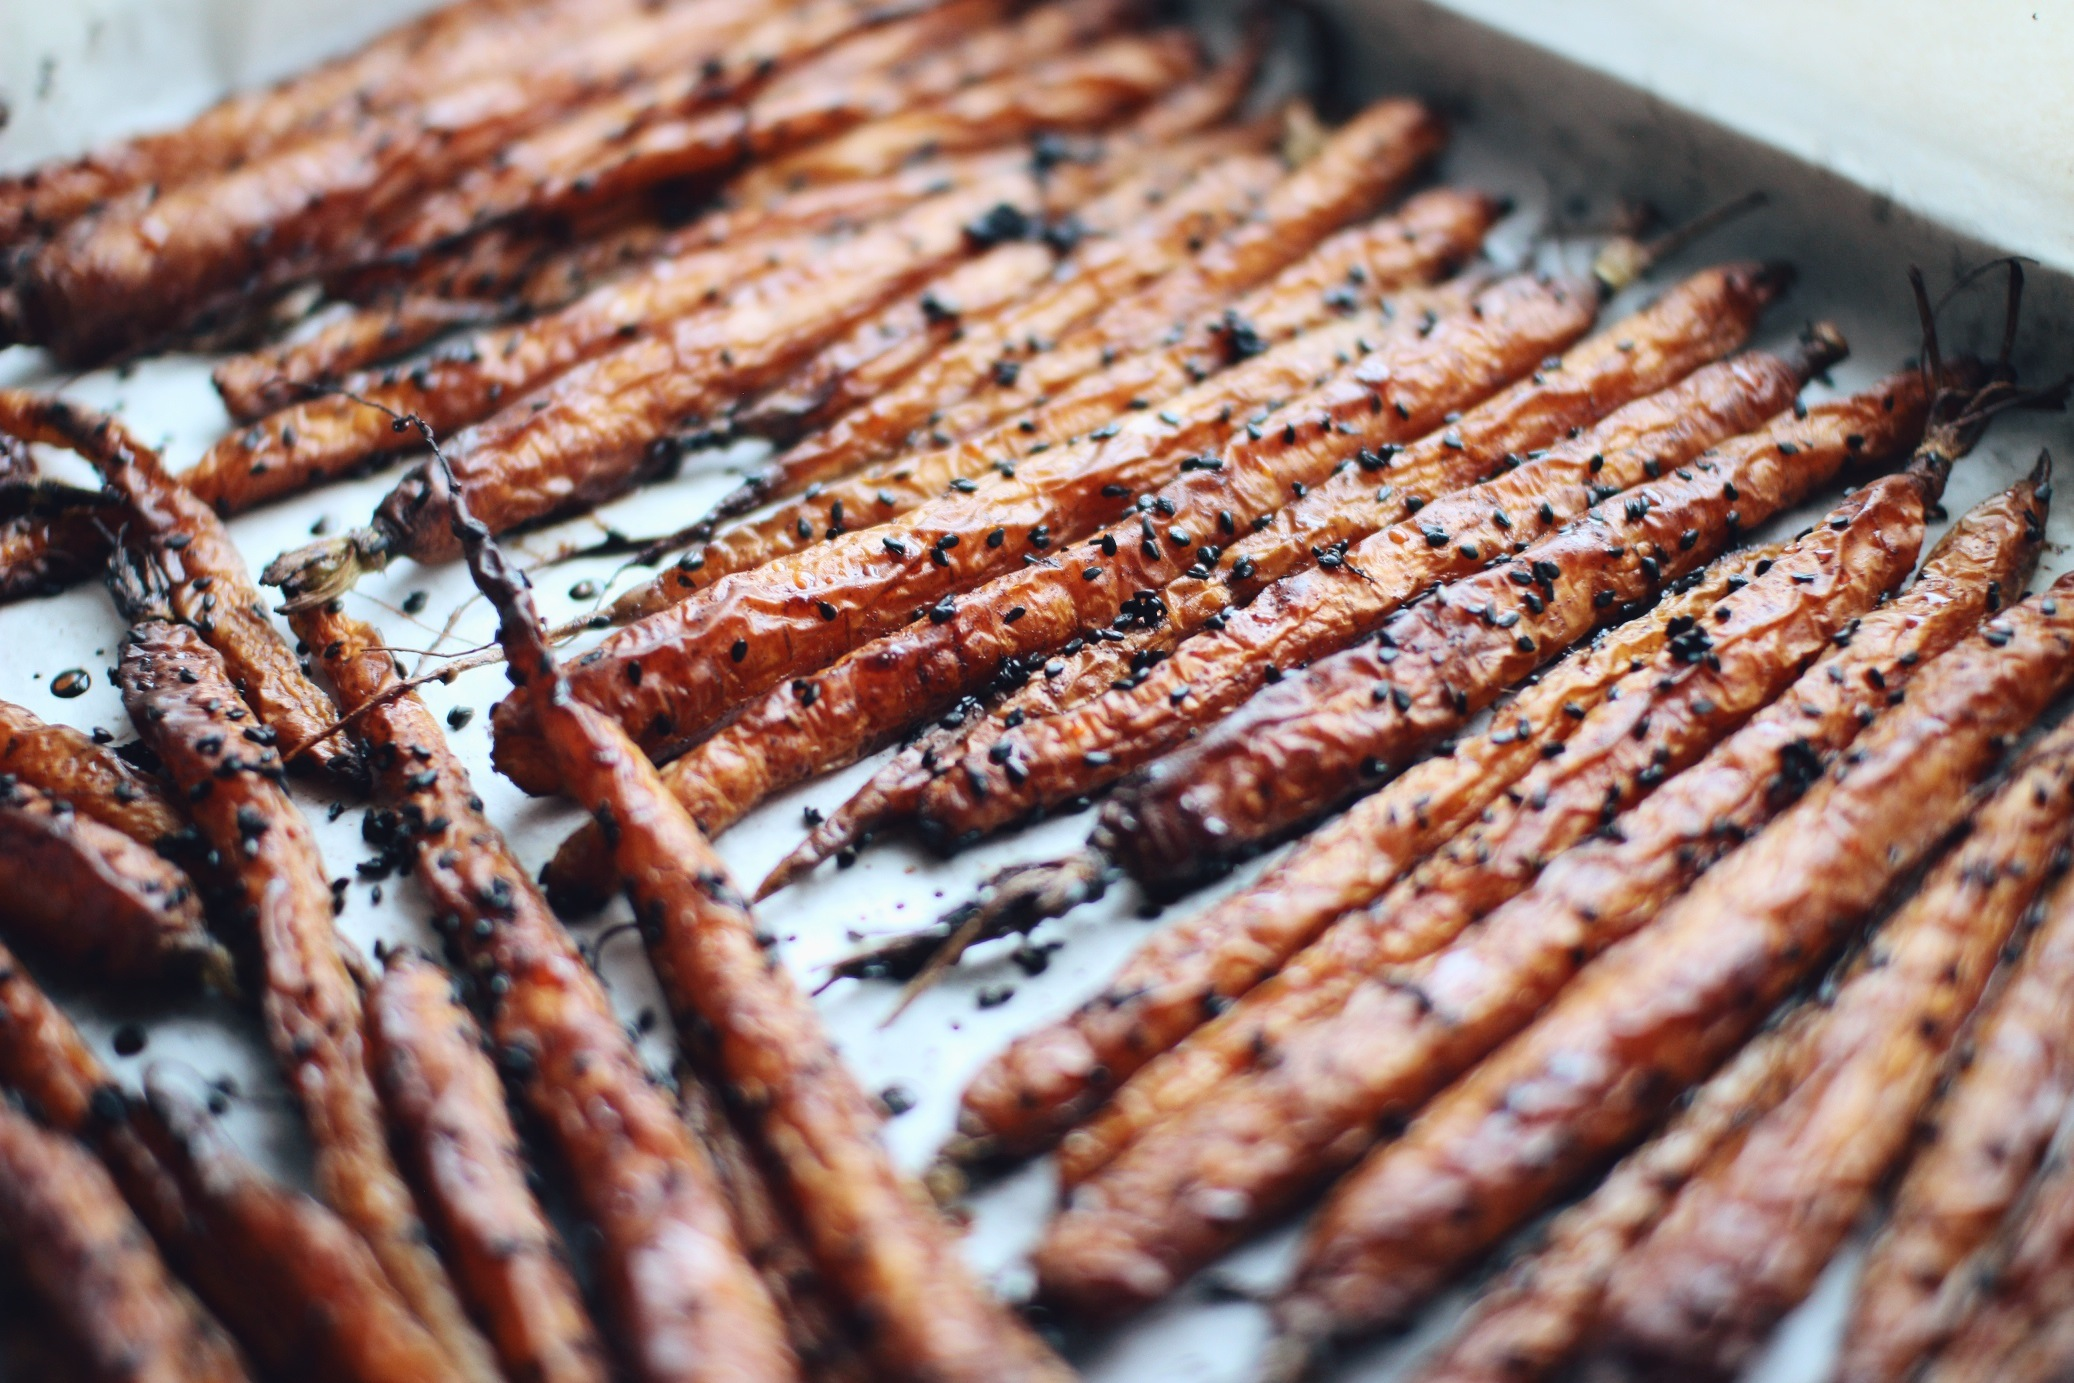 Cinnamon & Black Sesame Roasted Carrots - a beautiful dinner side dish to wow your guests with! By 'Not Your Typical Dietitian'